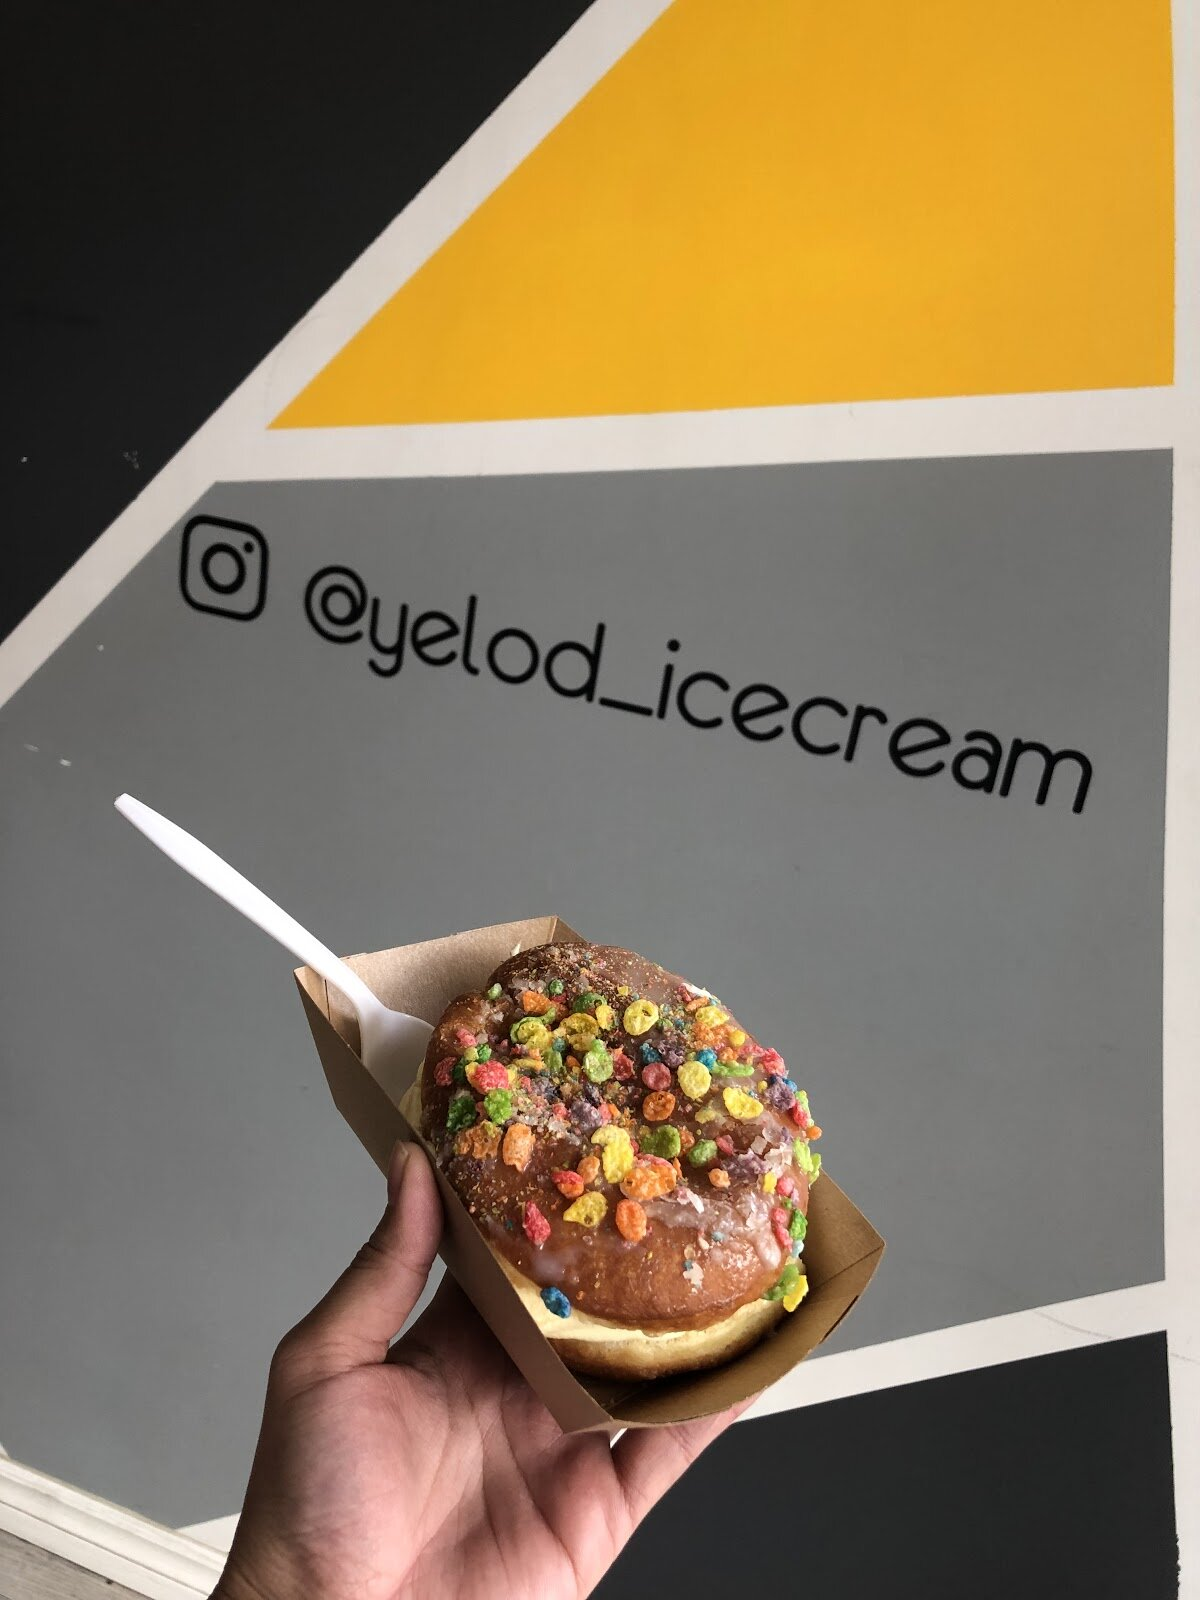 Edmonton -Yelo'd - As a proud filipino, I was ecstatic to see this cute little unassuming (literally, we almost walked right by it) soft serve spot that serves all the filipino flavours I grew up with. Since all of my teeth are sweet, I couldn't resist the donut stuffed with ice cream and sprinkled with sugary cereal. It was heaven and I may or may not have cried… Also props for creating an offline experience for your customers via your gorgeous store and photo walls!(If you don't believe that I actually cried, check out the extremely flattering video my colleagues took.)@yelod_icecream